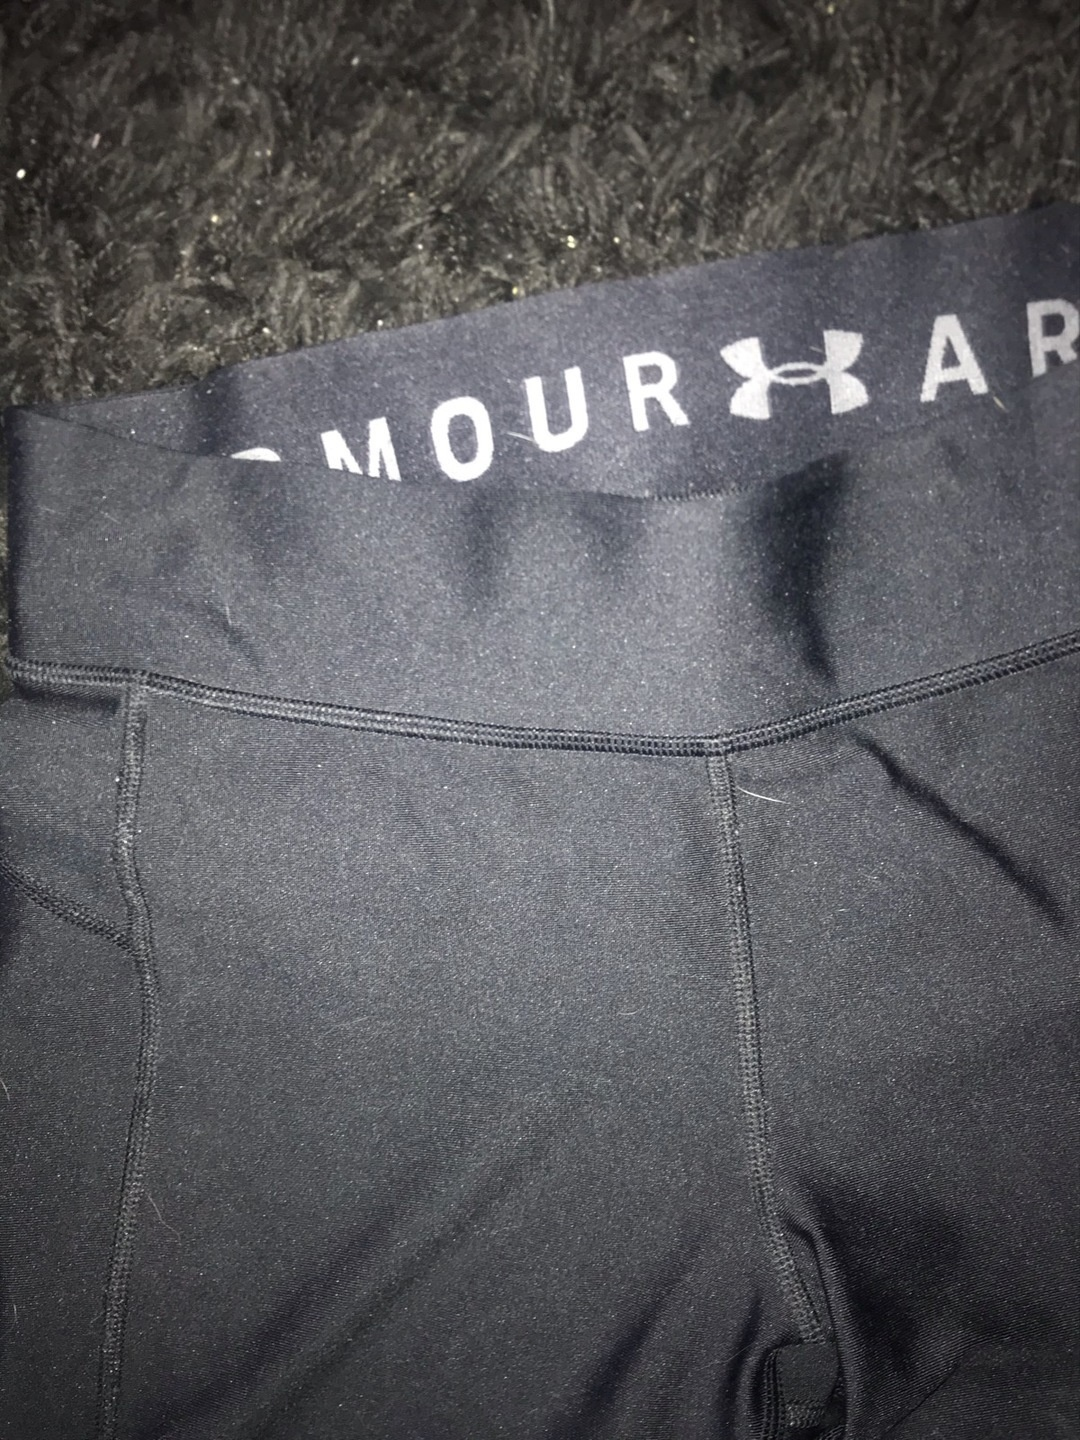 Women's trousers & jeans - UNDER ARMOUR photo 2